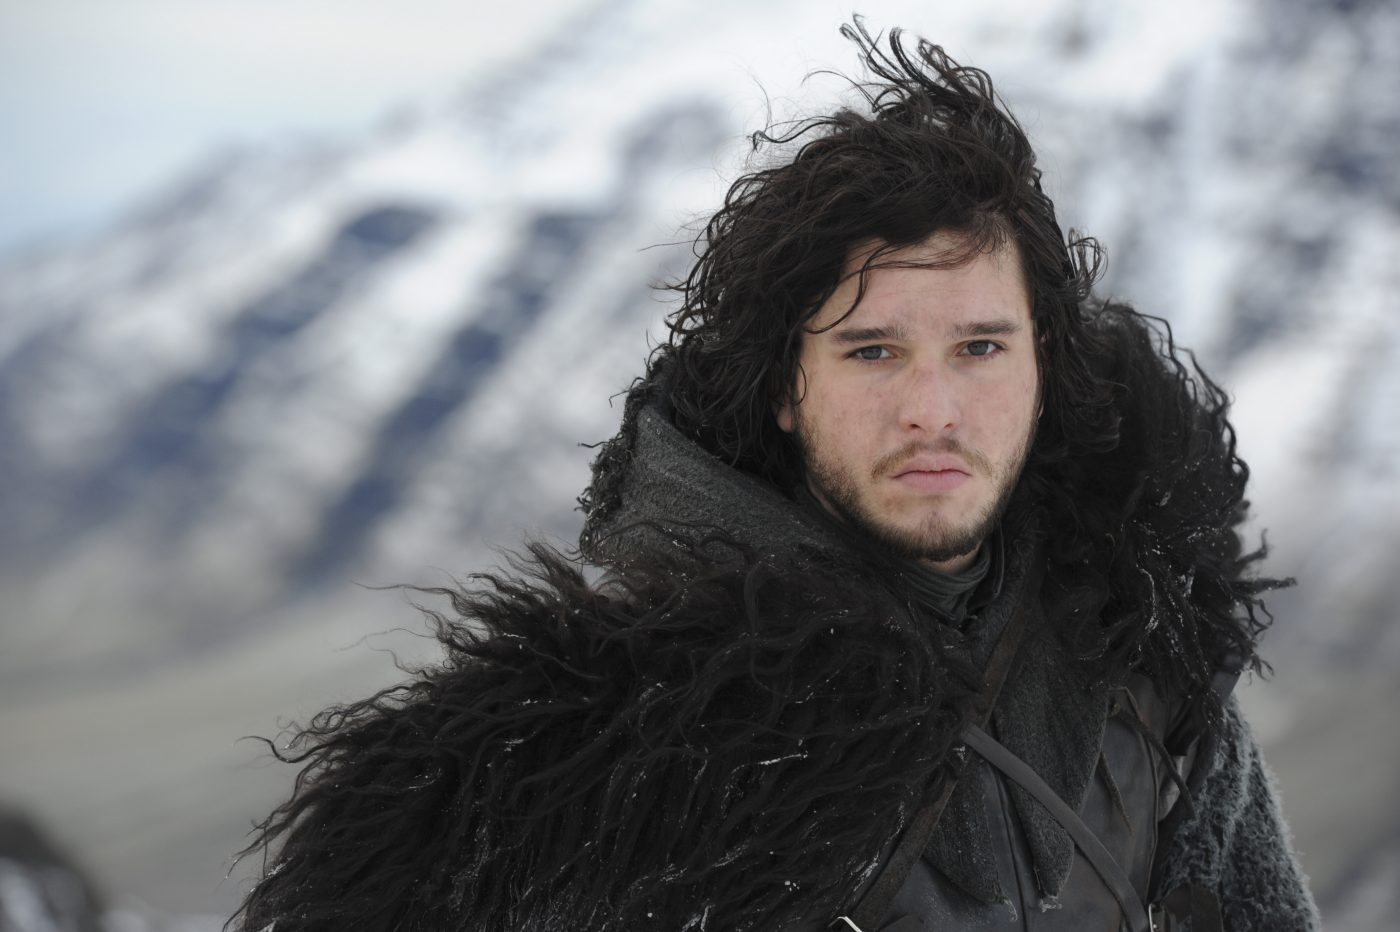 Dragon Blooded: Four Game of Thrones Characters Who Are Secretly Targaryens